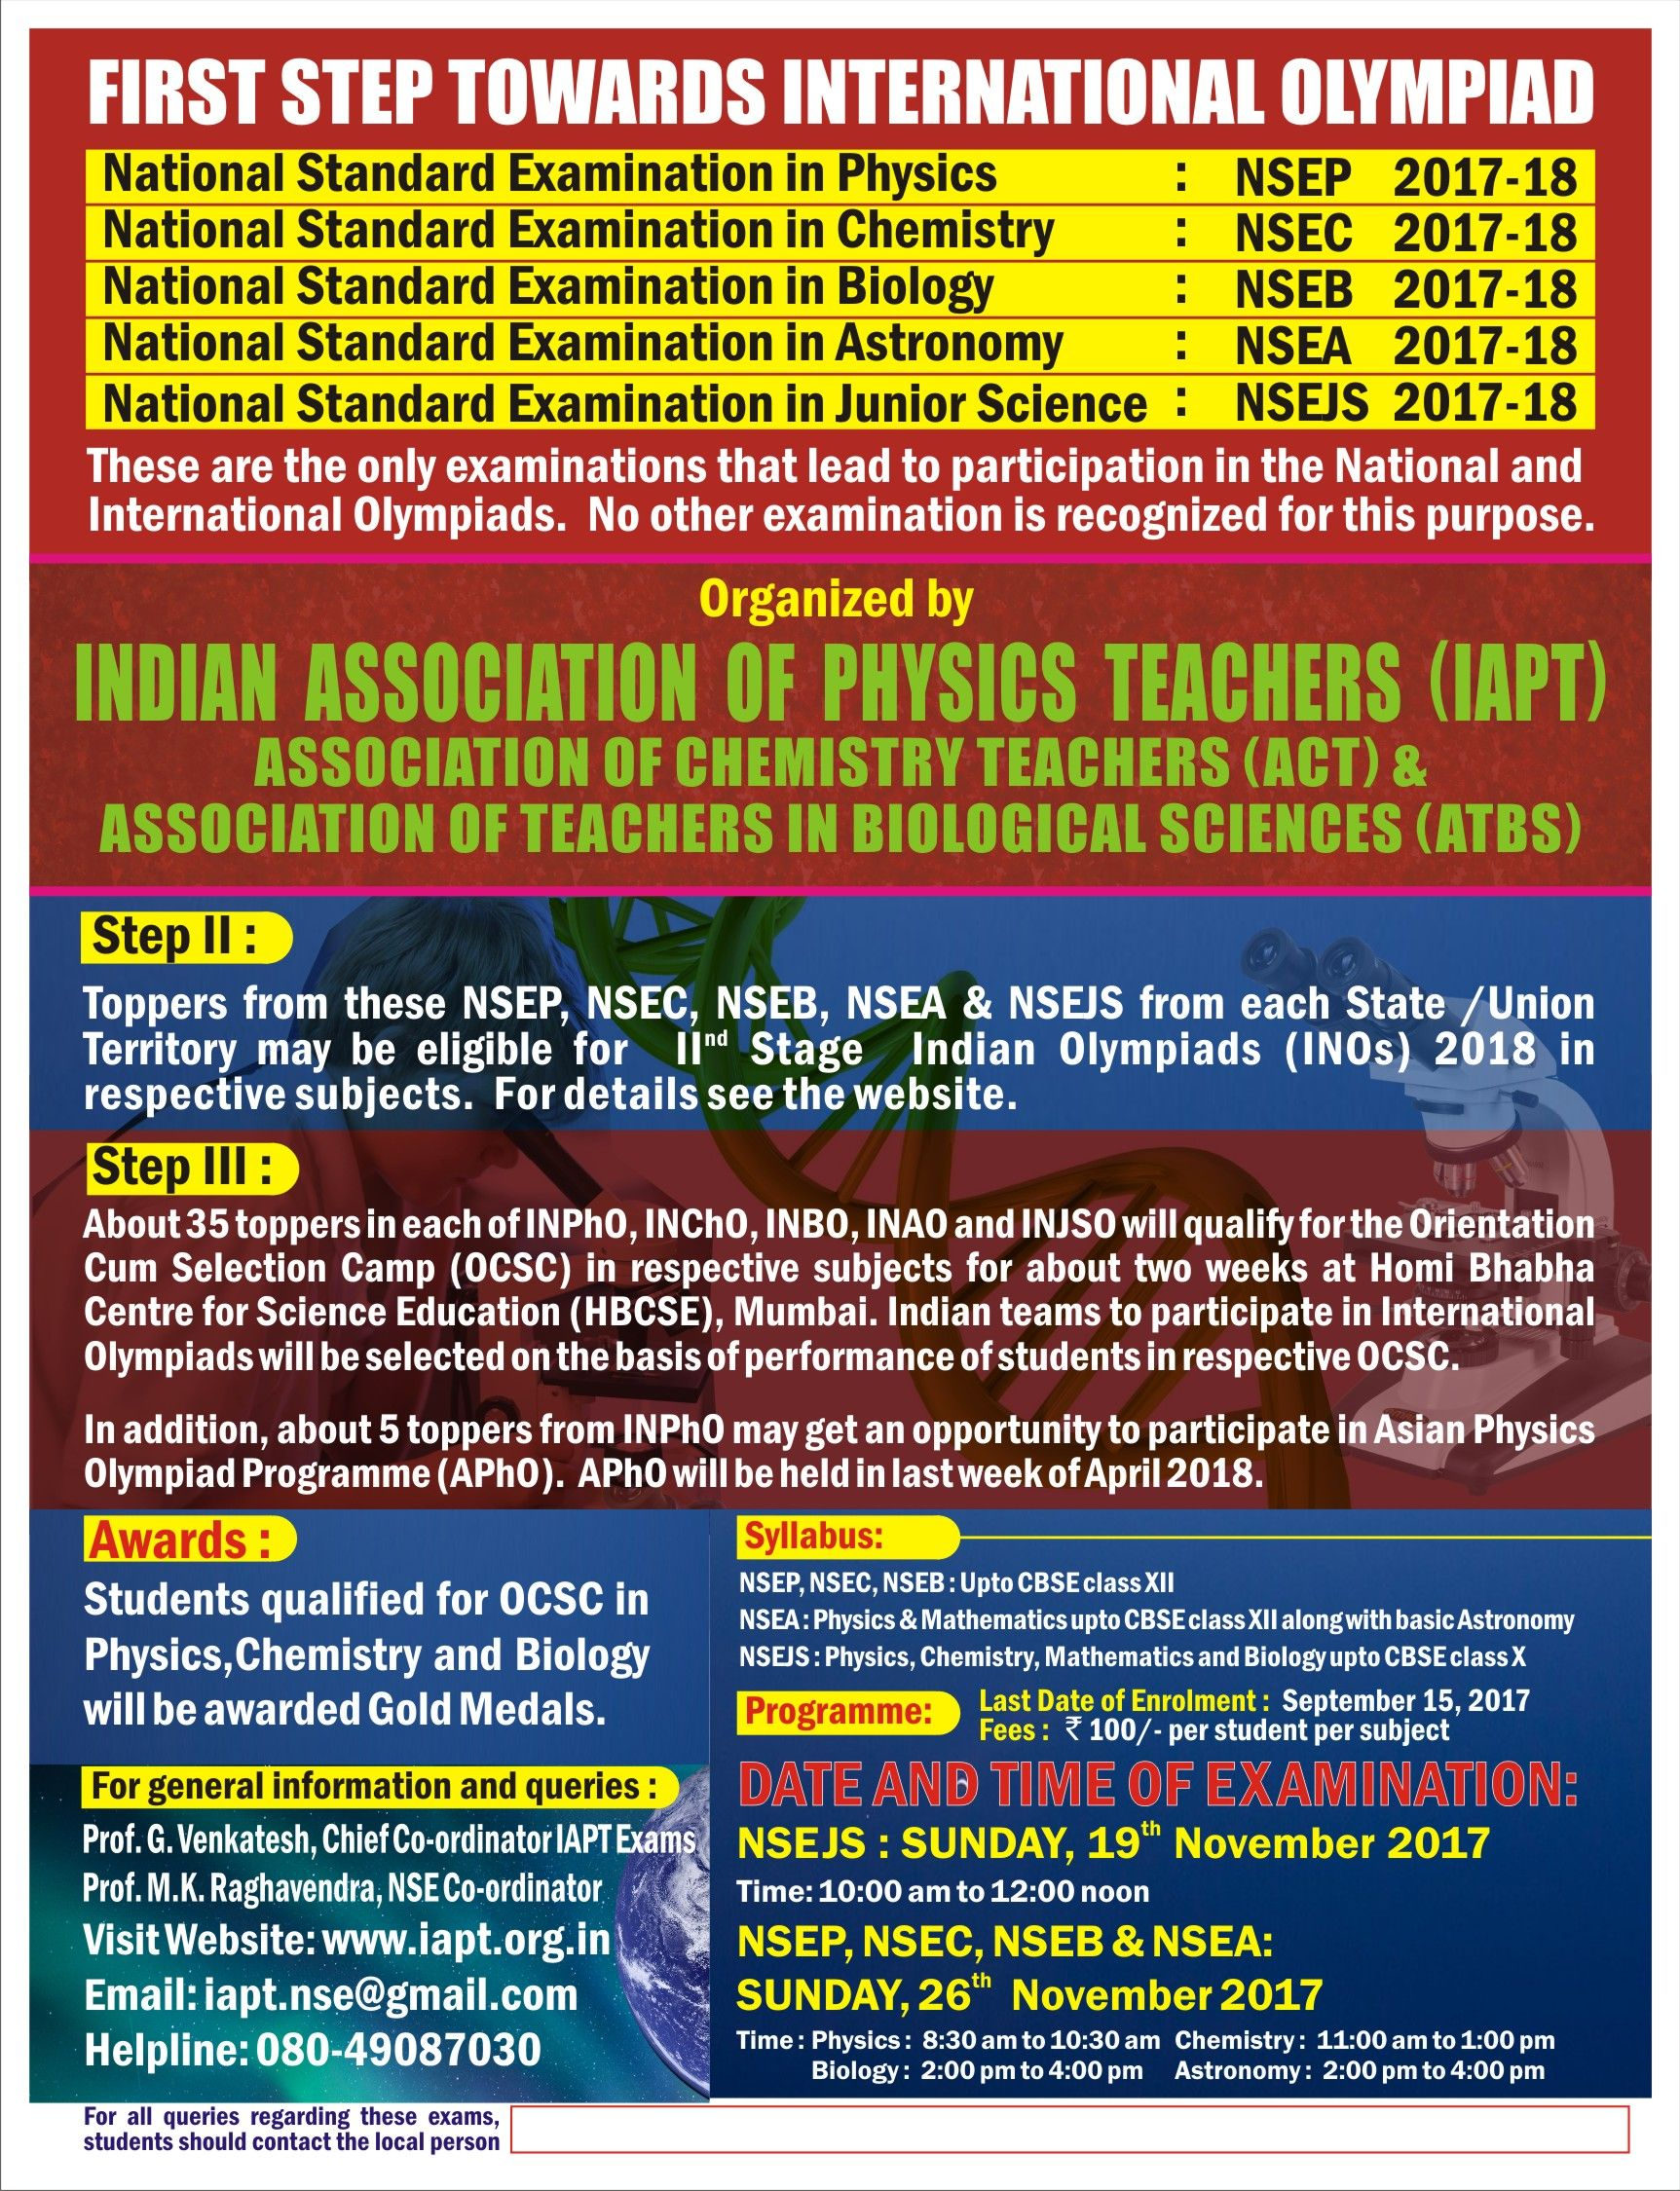 NATIONAL OLYMPIAD FOR STUDENTS (With images